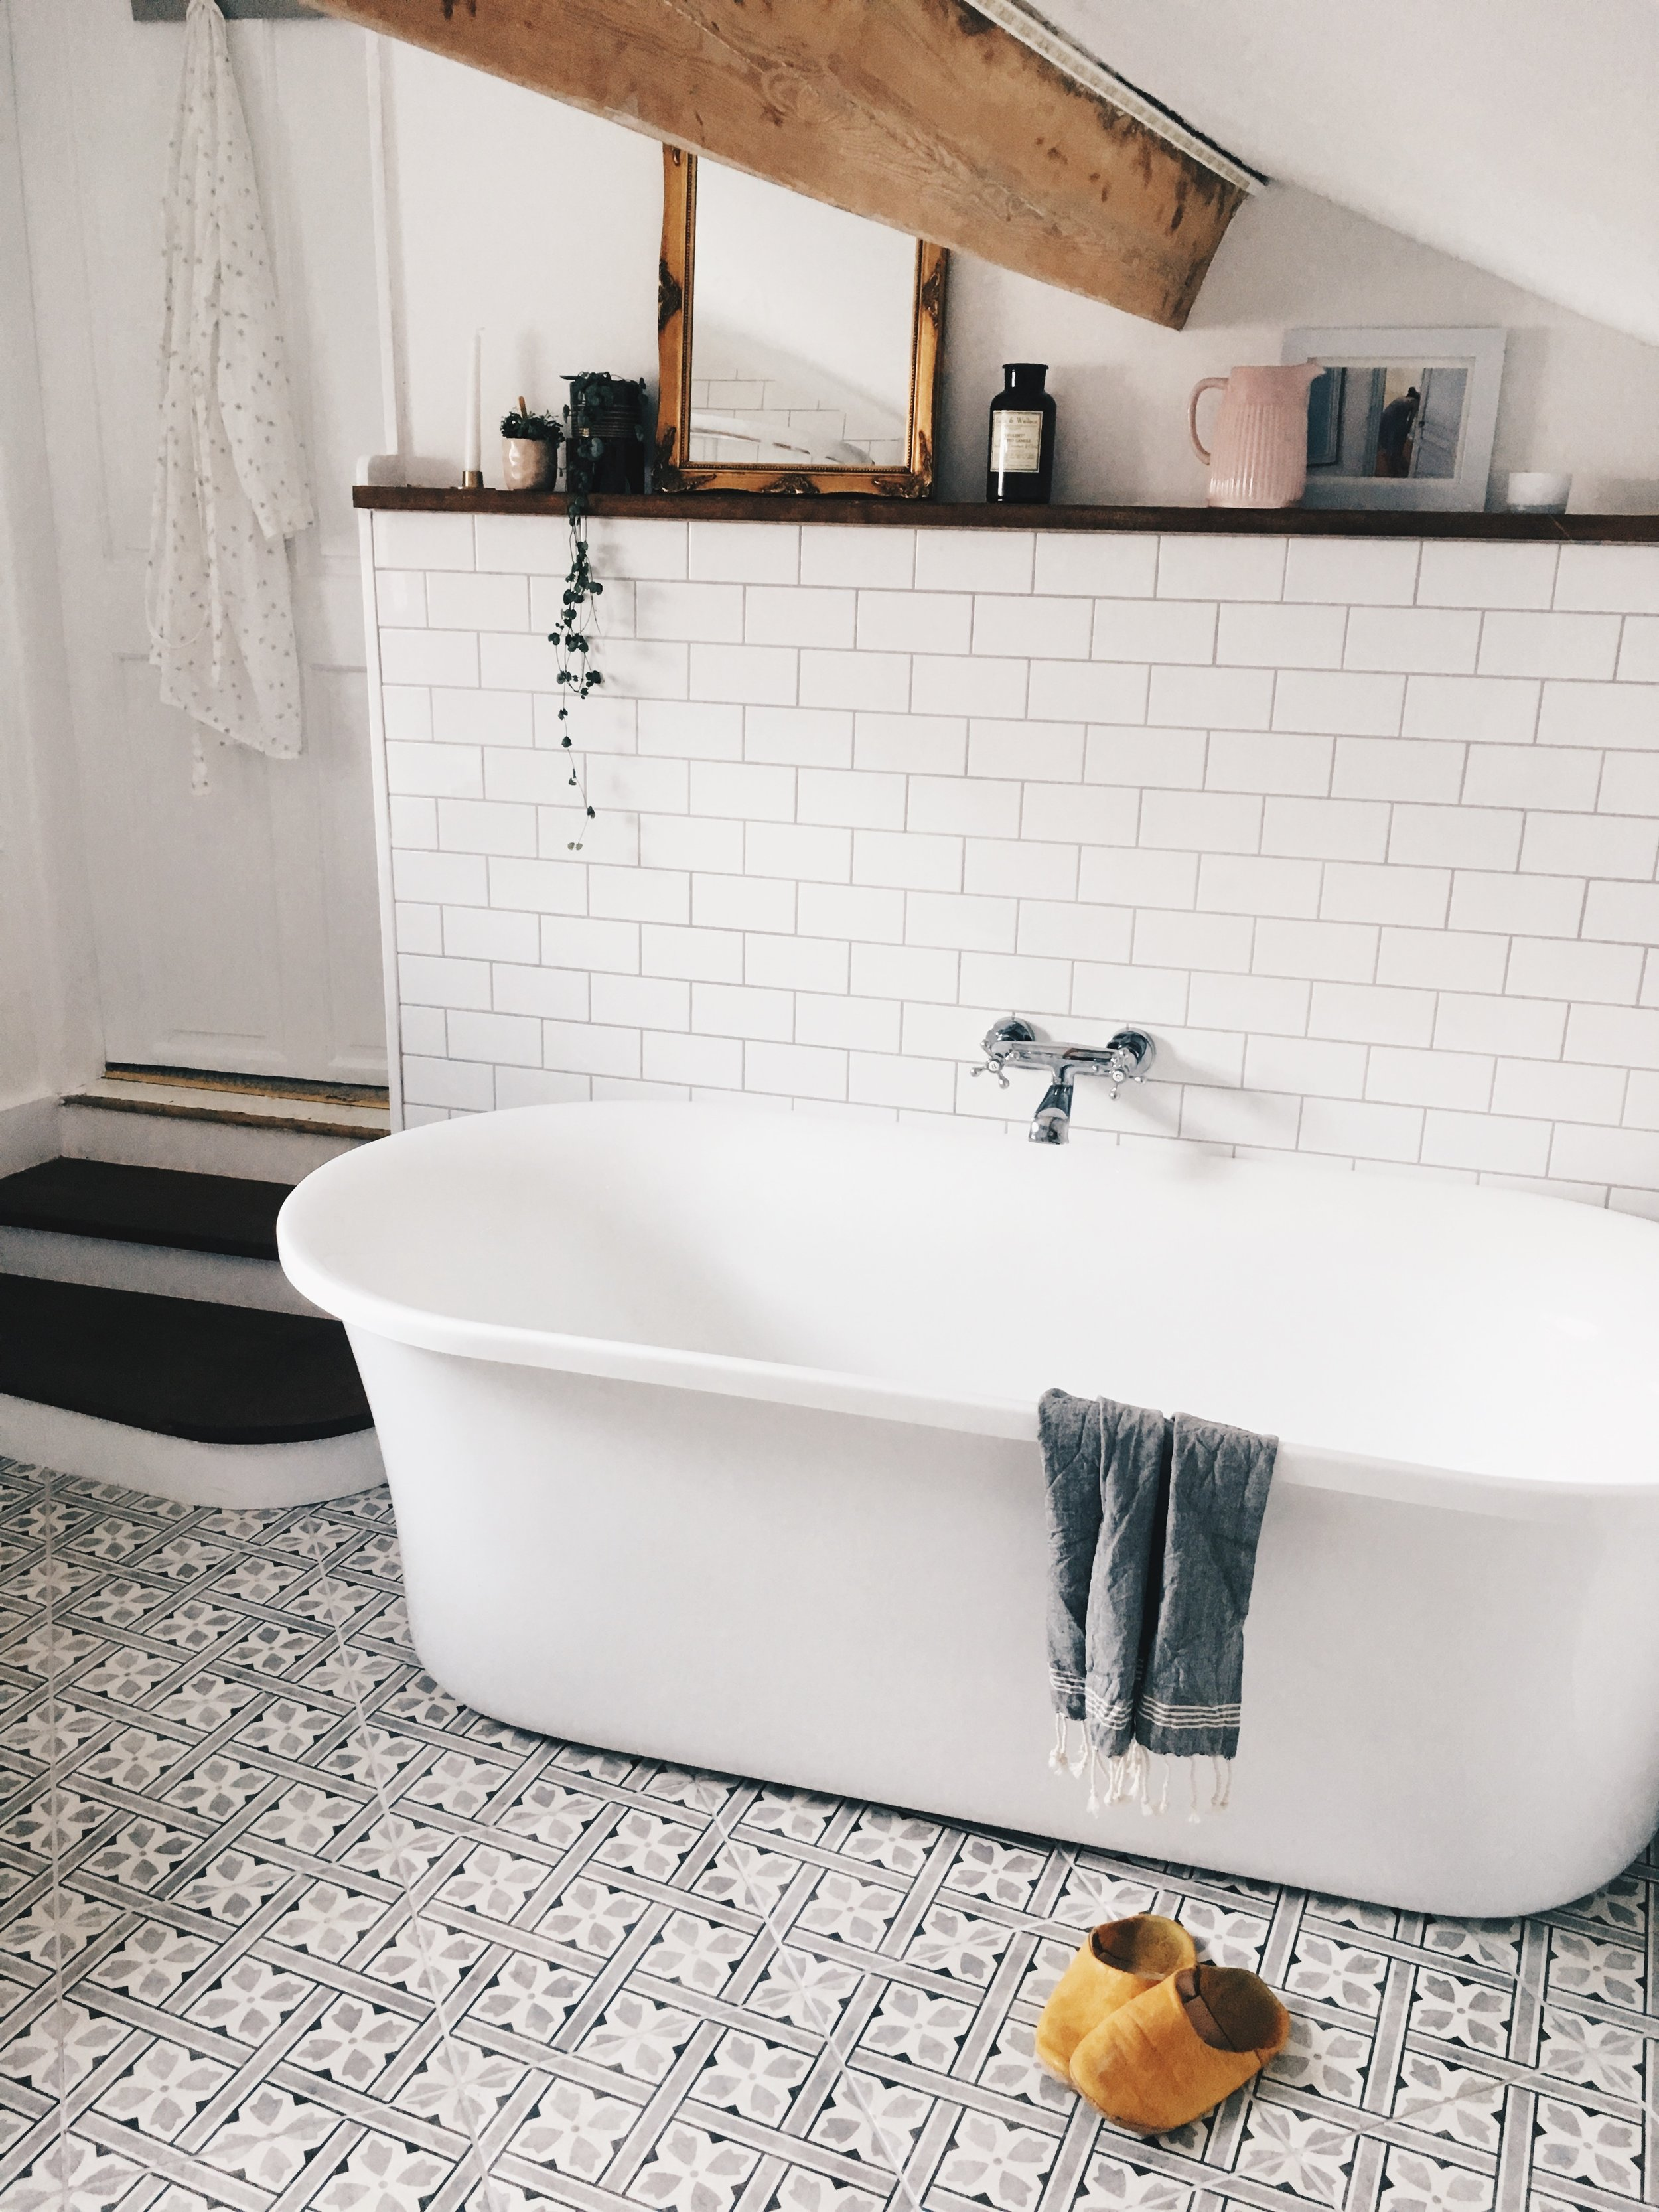 We all love the bath we chose - a modern take on the roll top.  It was from Victoria Plumb online and fits the space perfectly.  Having the bath here is much more comfortable and having the taps mounted on the wall in the middle mean that you can face the room.